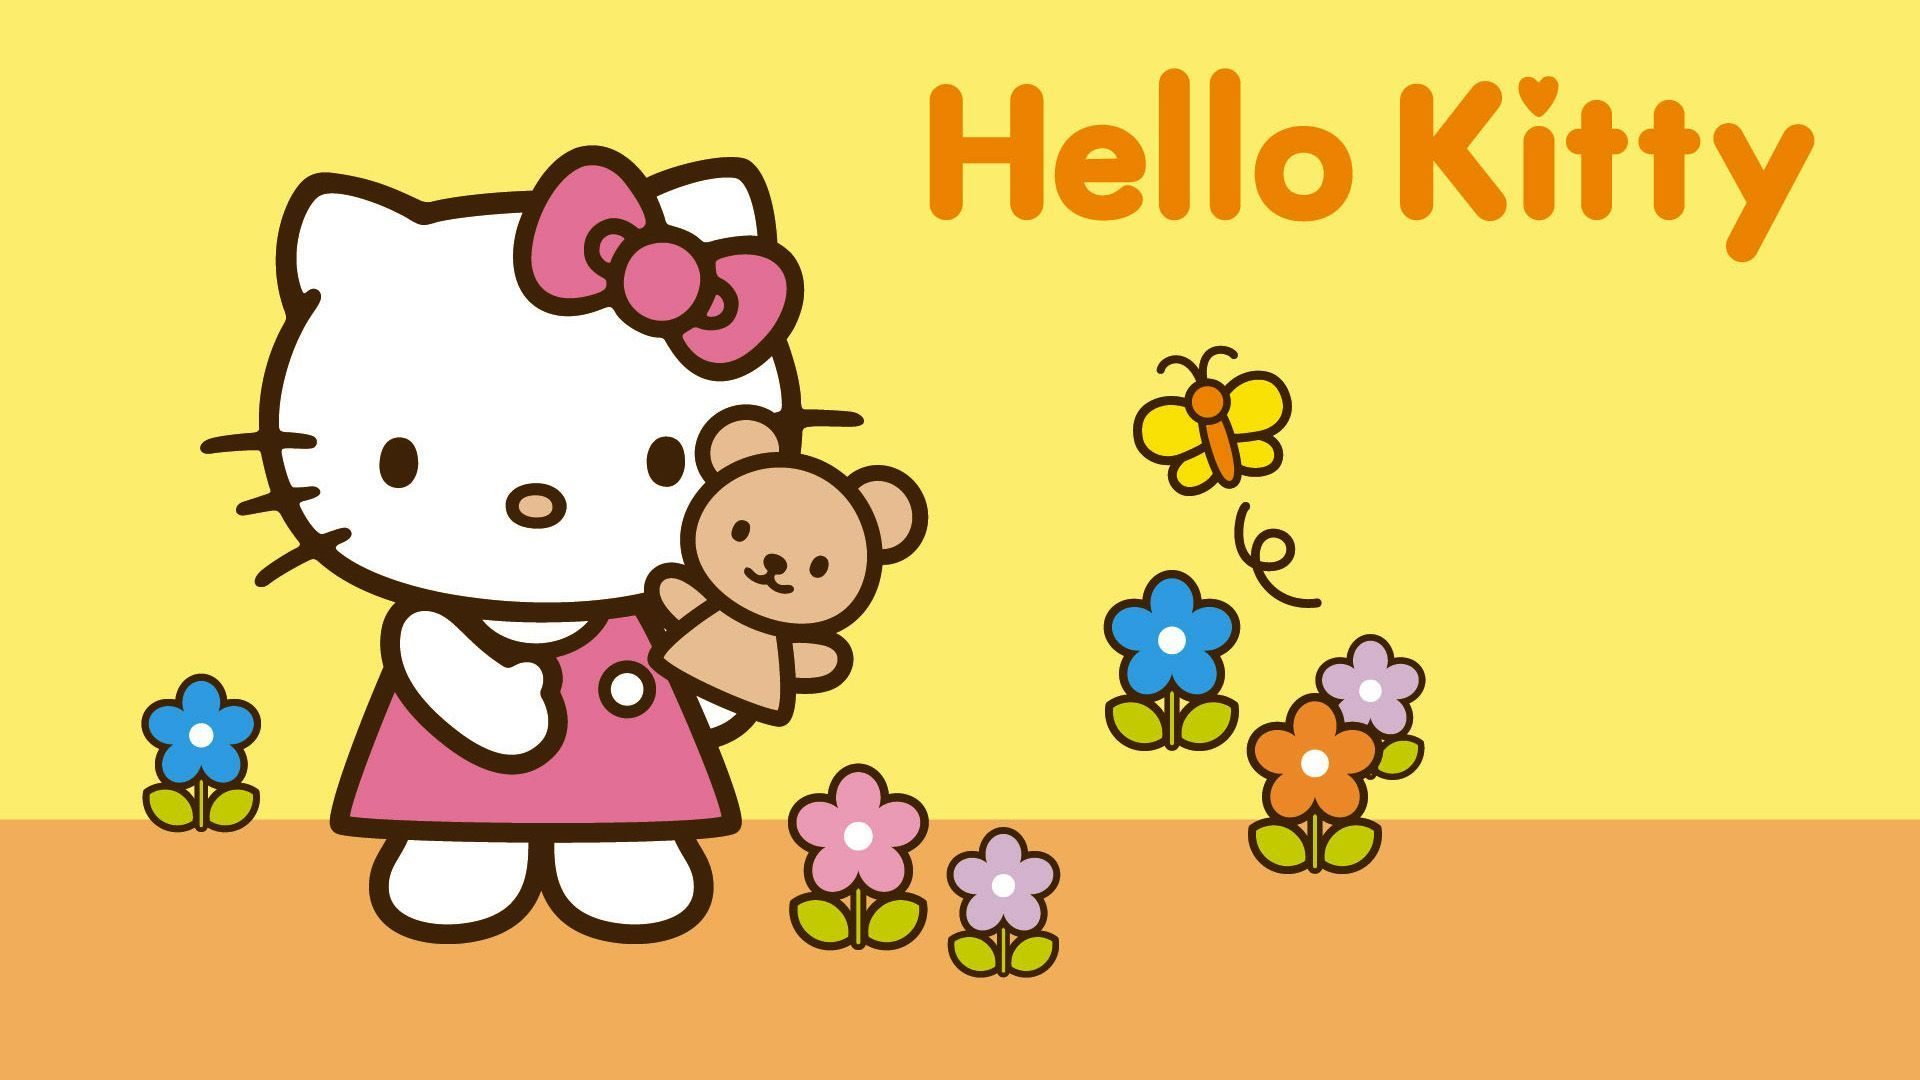 Simple Wallpaper Hello Kitty 1080p - 3d3ef1a78aa78598bf02cfd277307f17  Trends_47388.jpg